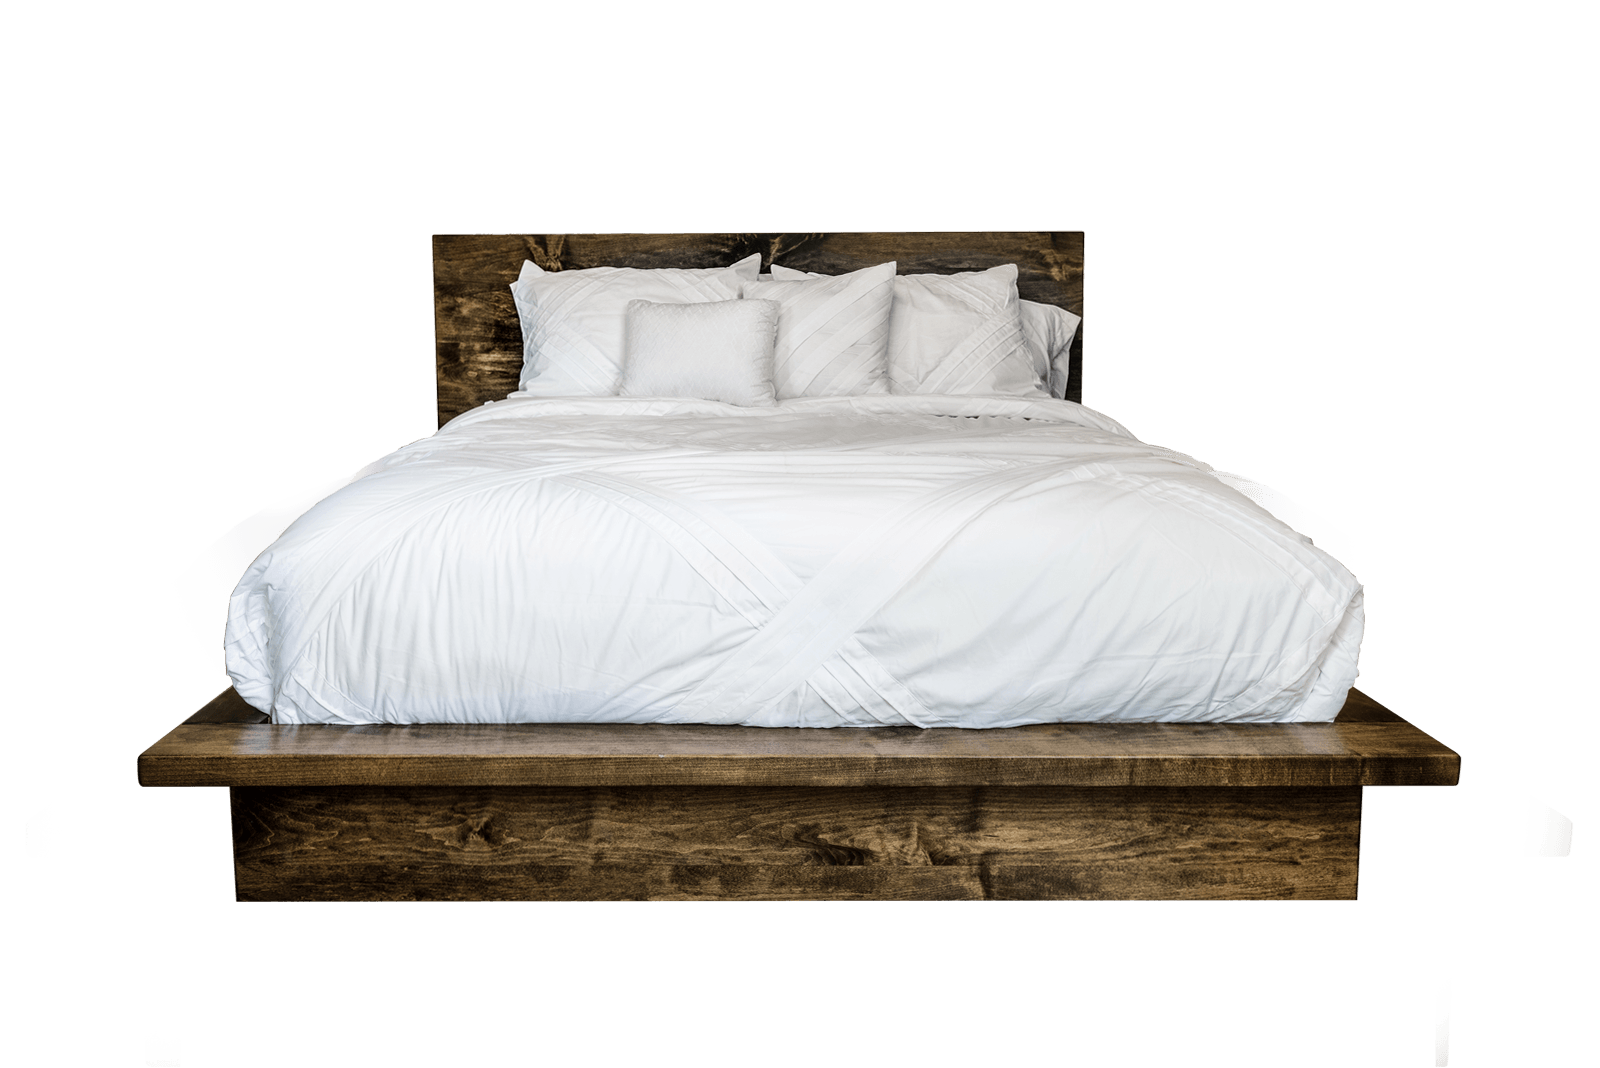 bed png transparent bed images pluspng #19166